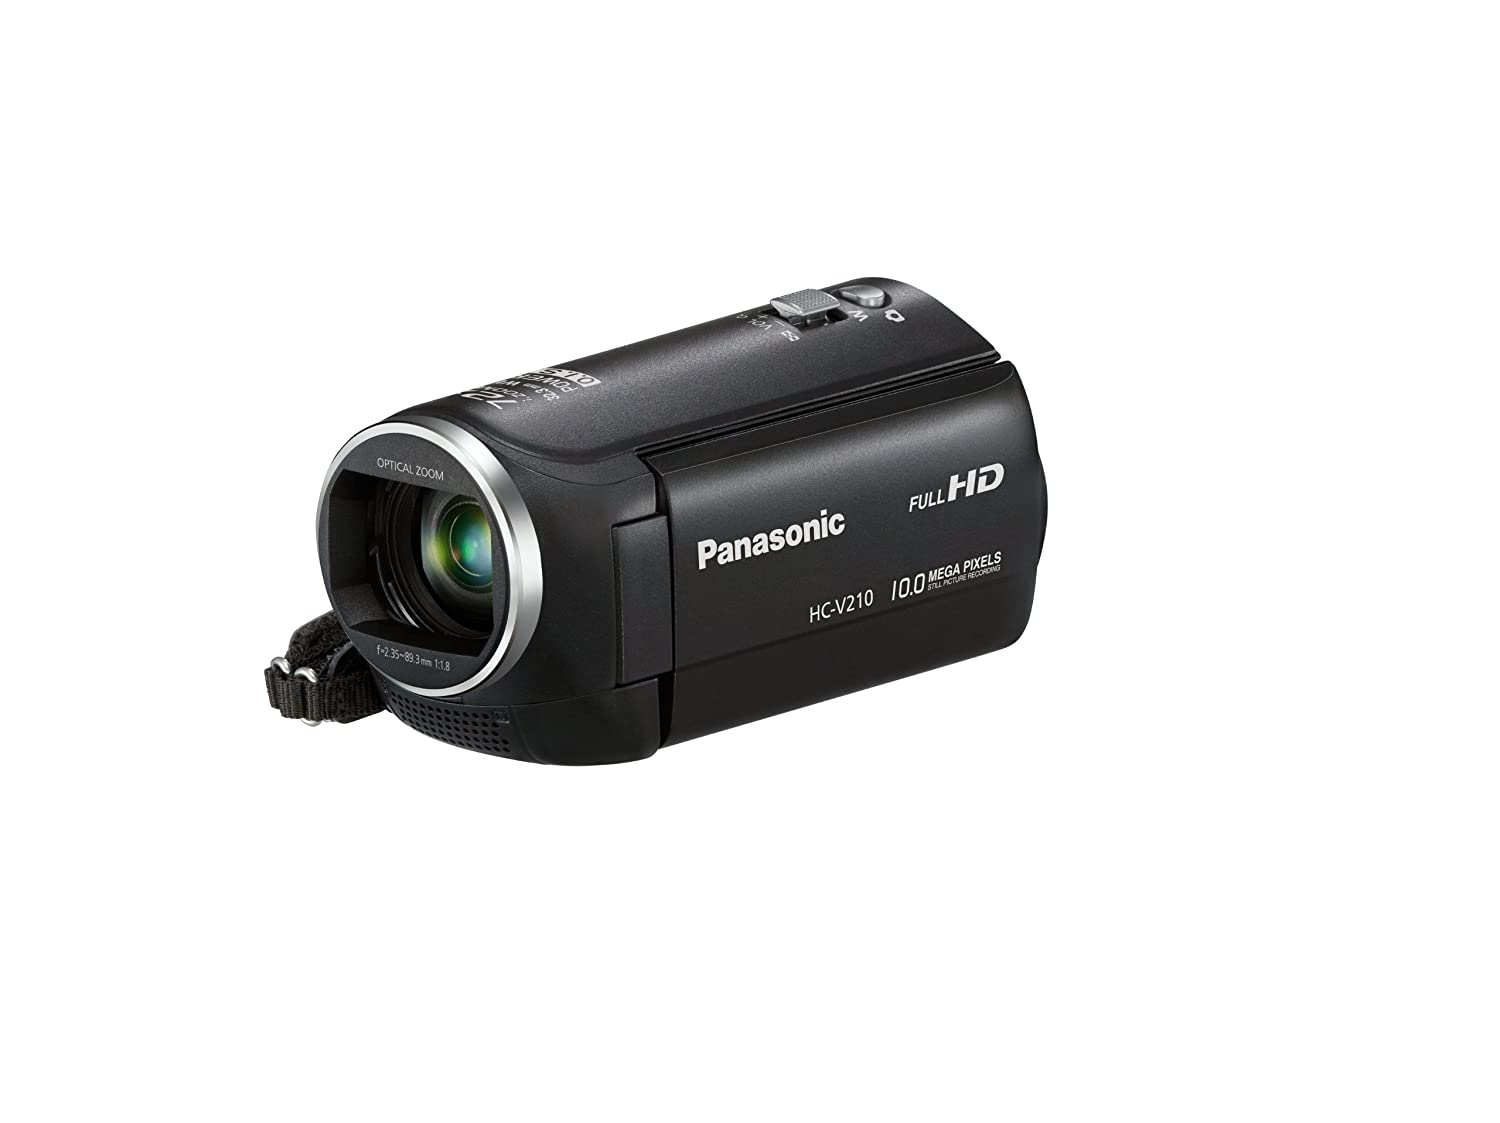 Buy Panasonic V210 10MP Camcorder with Full HD Video